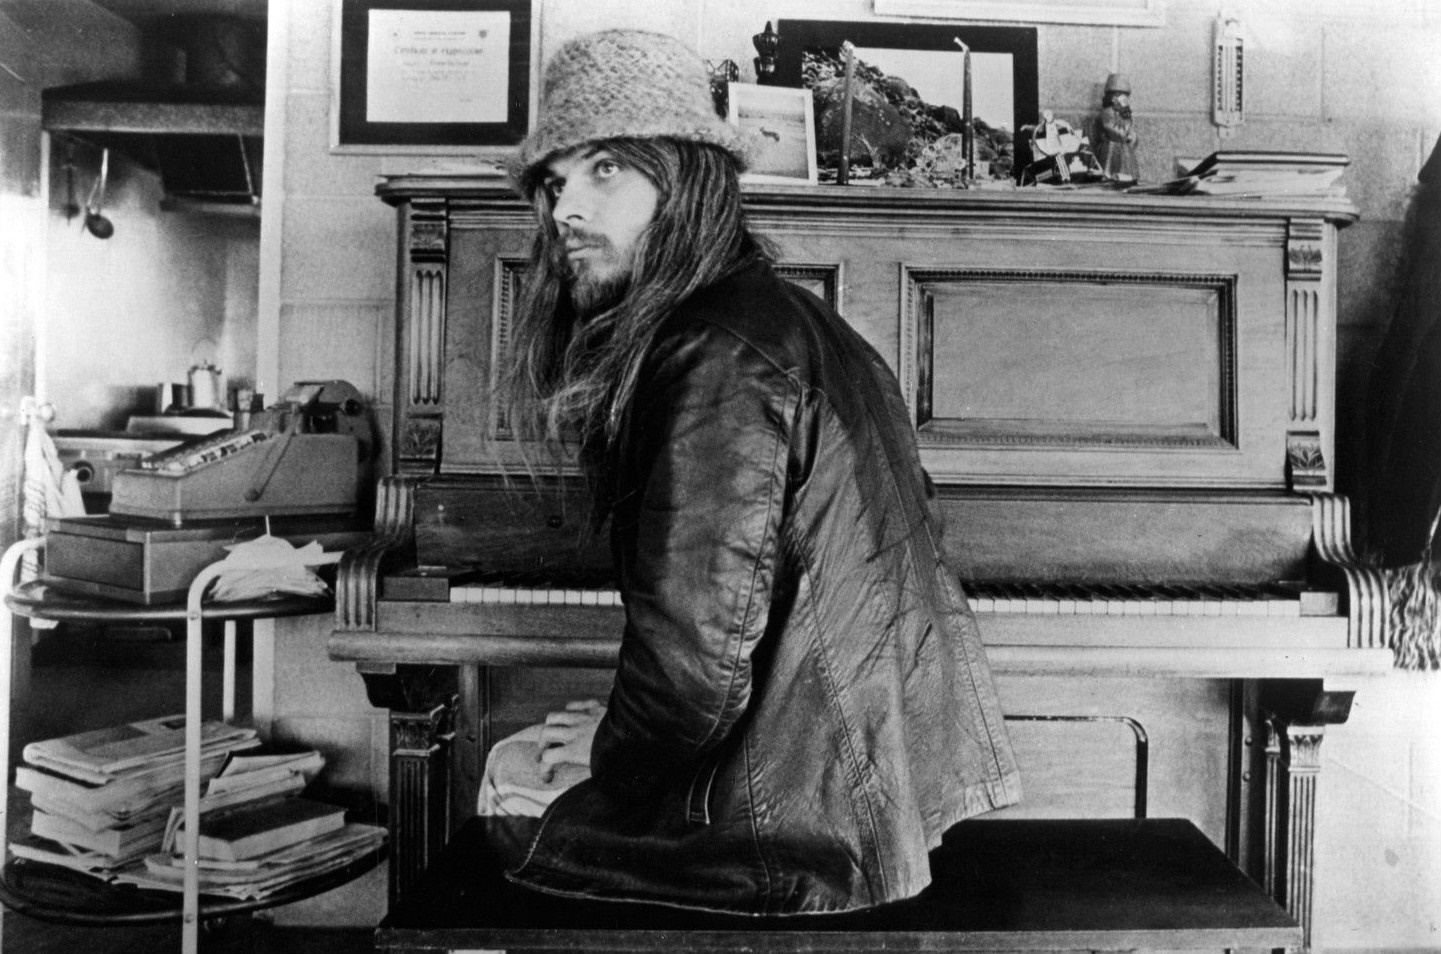 La versión del A Hard Rain's A-Gonna Fall de Leon Russell